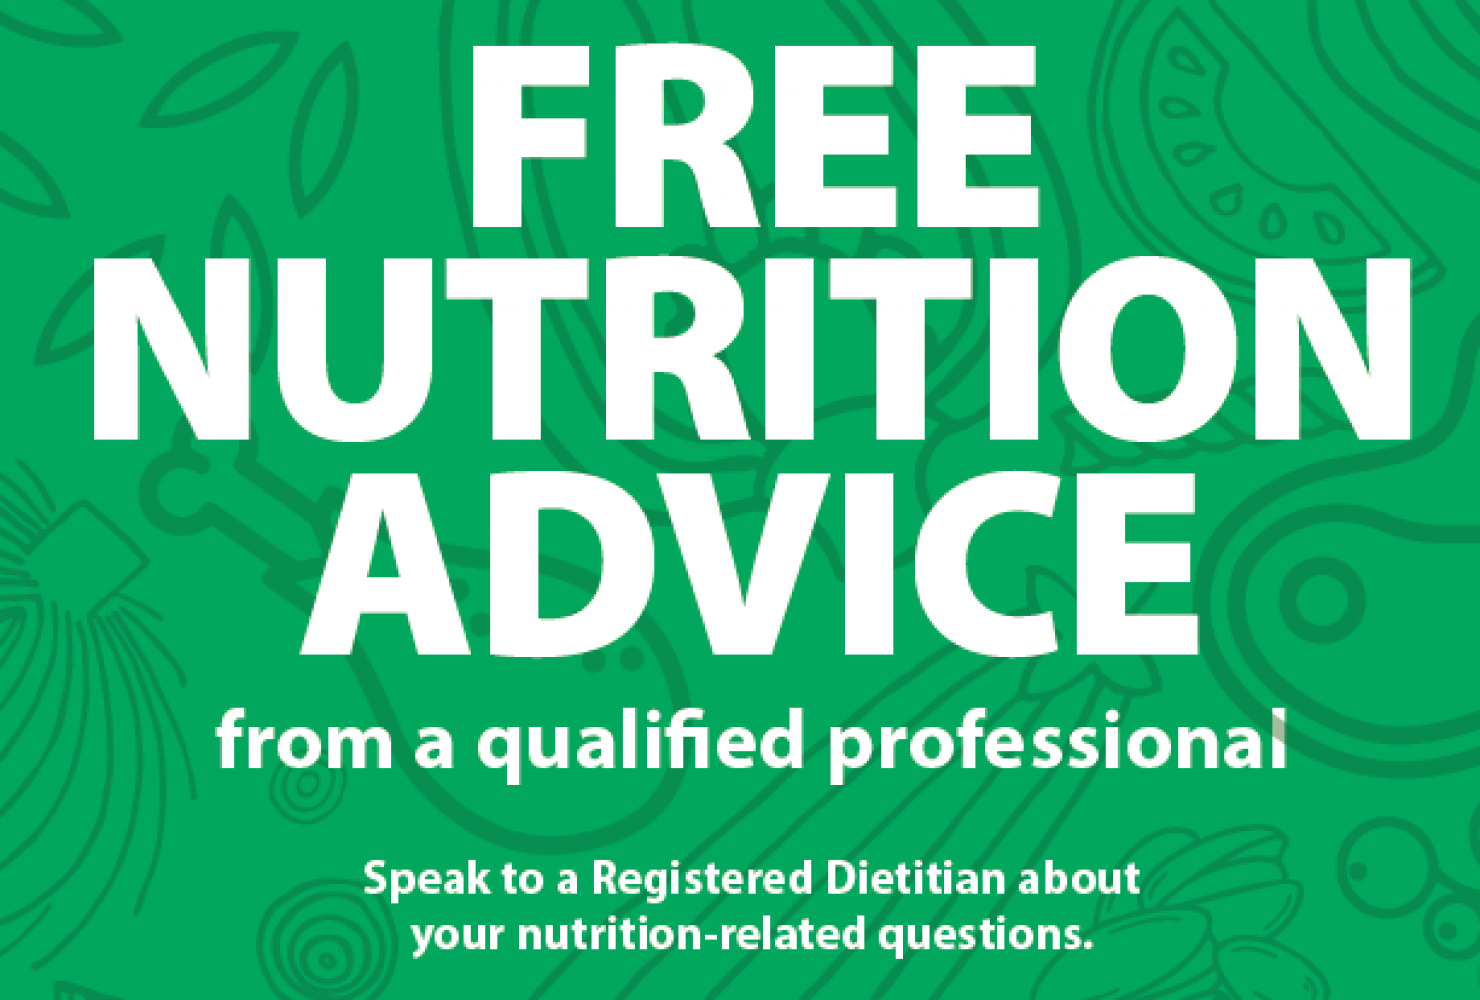 Free Nutrition Advice - Available in over 200 languages